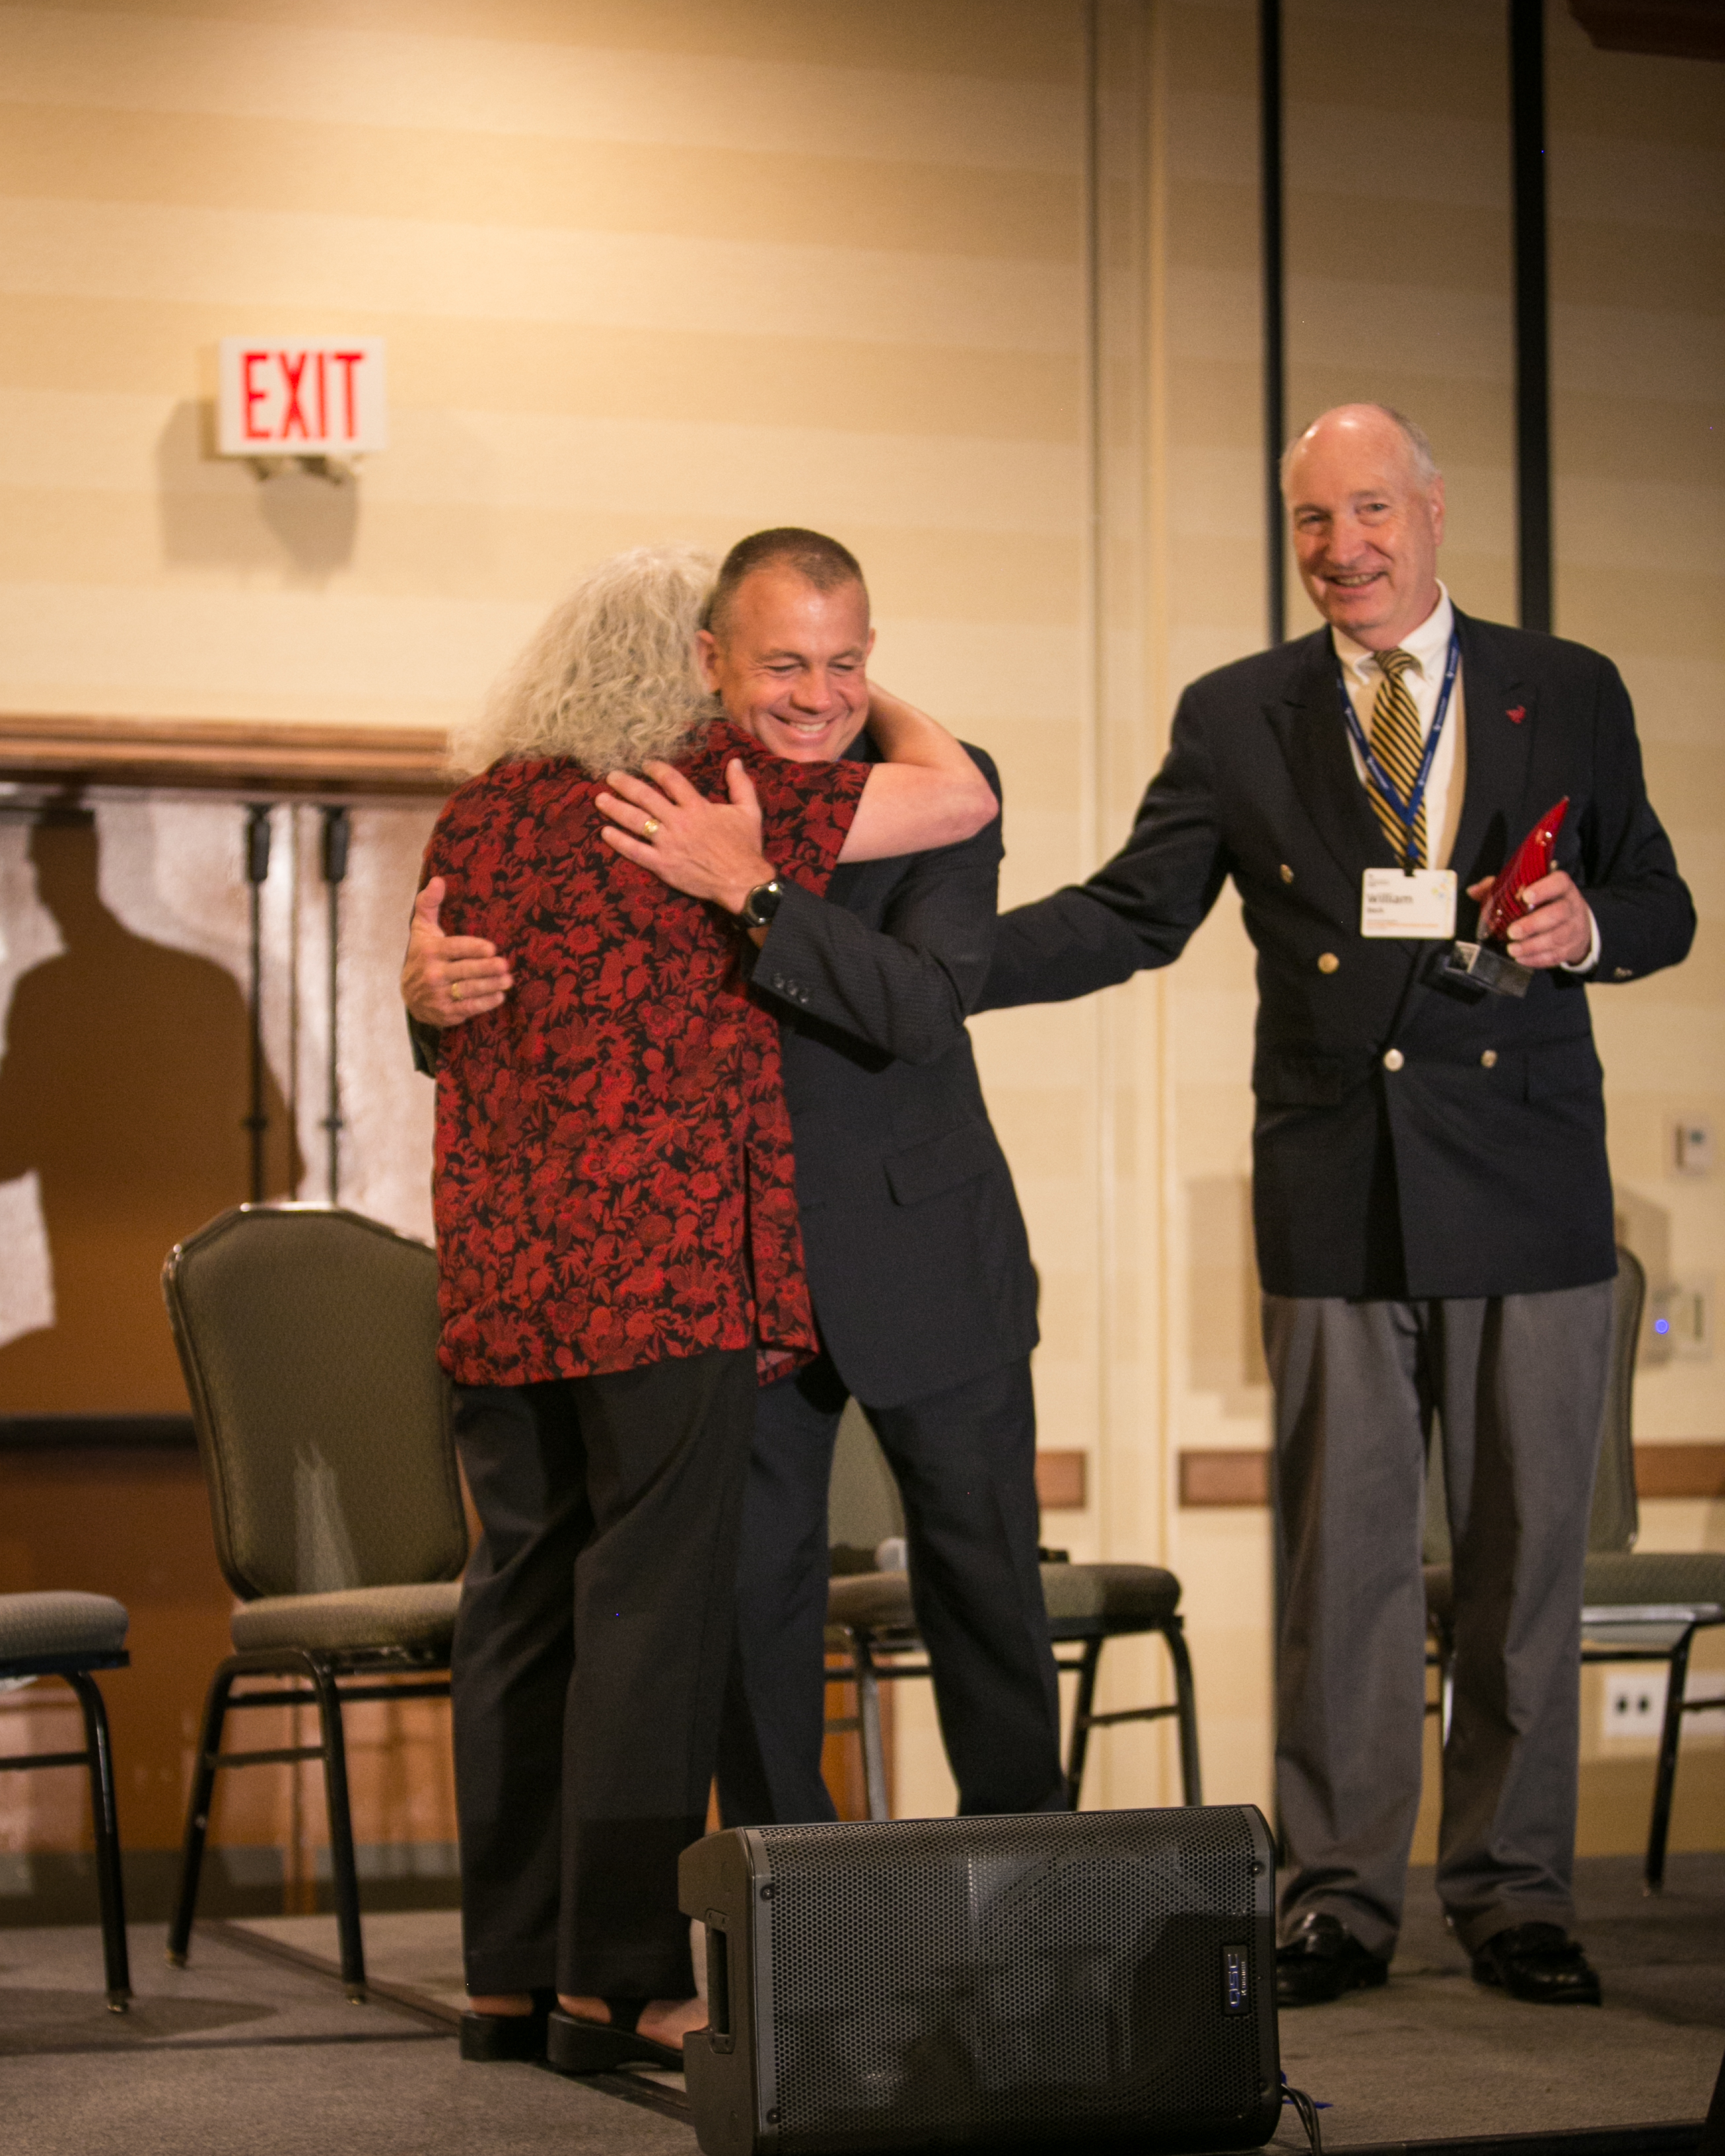 Dissertation of the Year Award Winner Dr. Roberts hugs his chair Dr. Kovacich on stage at 2017 KWB Symposium